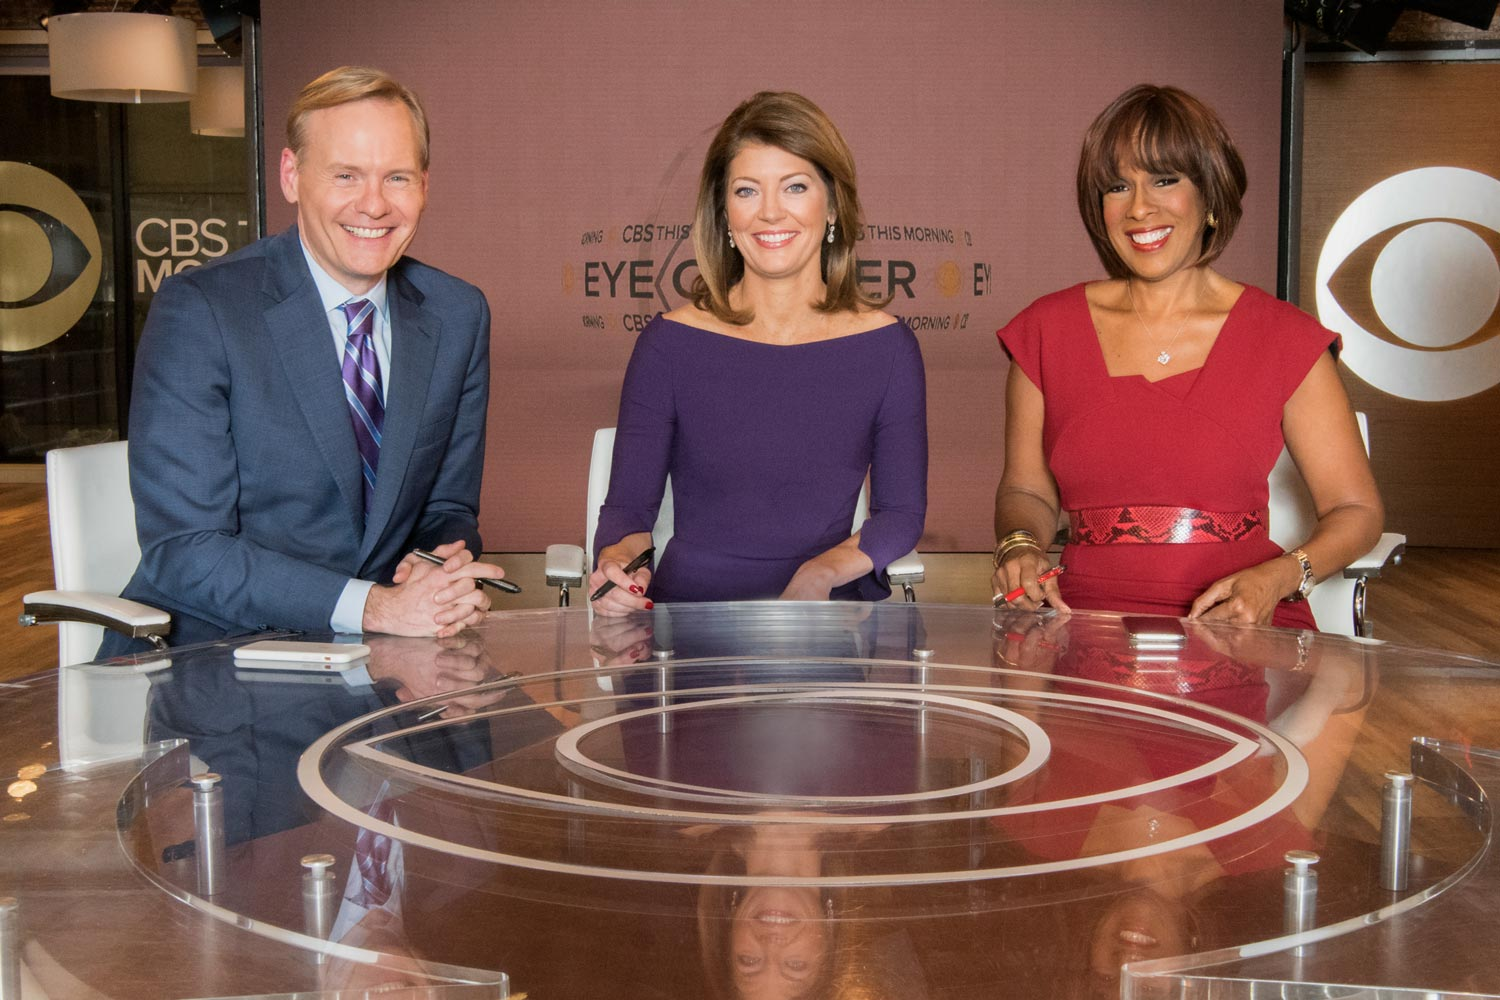 """CBS This Morning"" co-hosts Norah O'Donnell, Gayle King and John Dickerson."